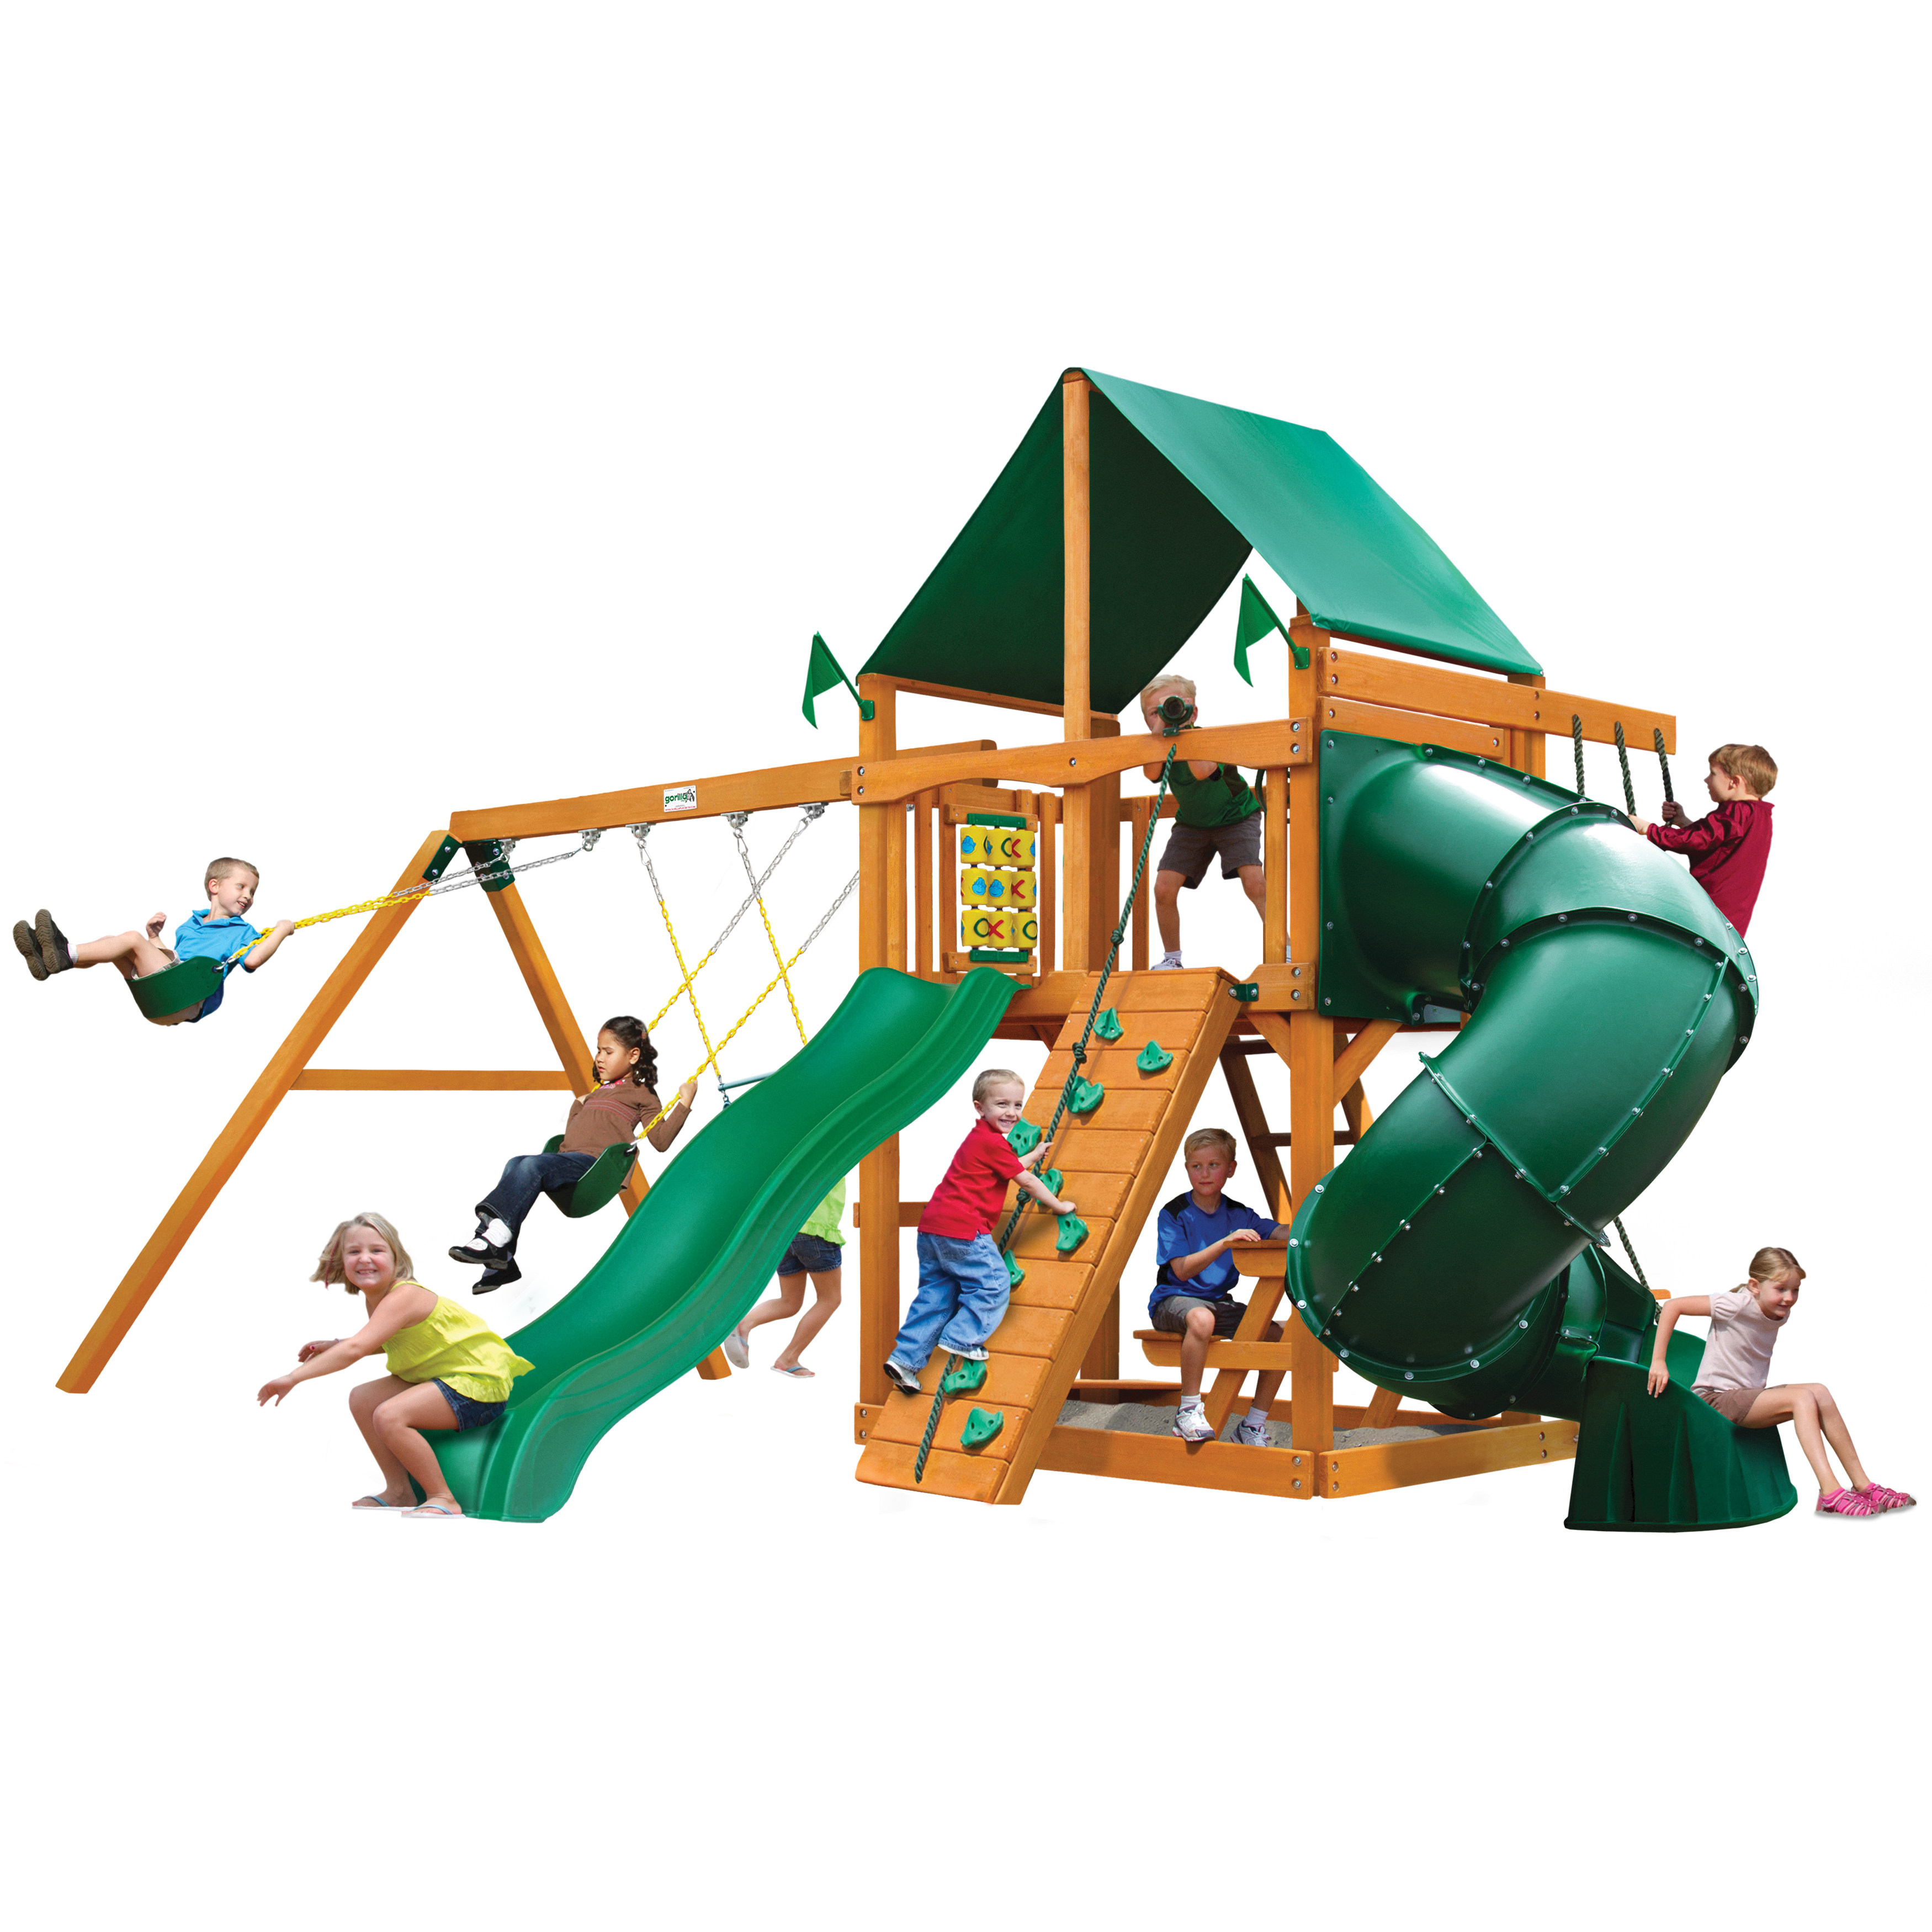 Gorilla Playsets Mountaineer Wooden Swing Set with Green Vinyl Canopy, Extreme Tube Slide, and Rock Climbing Wall